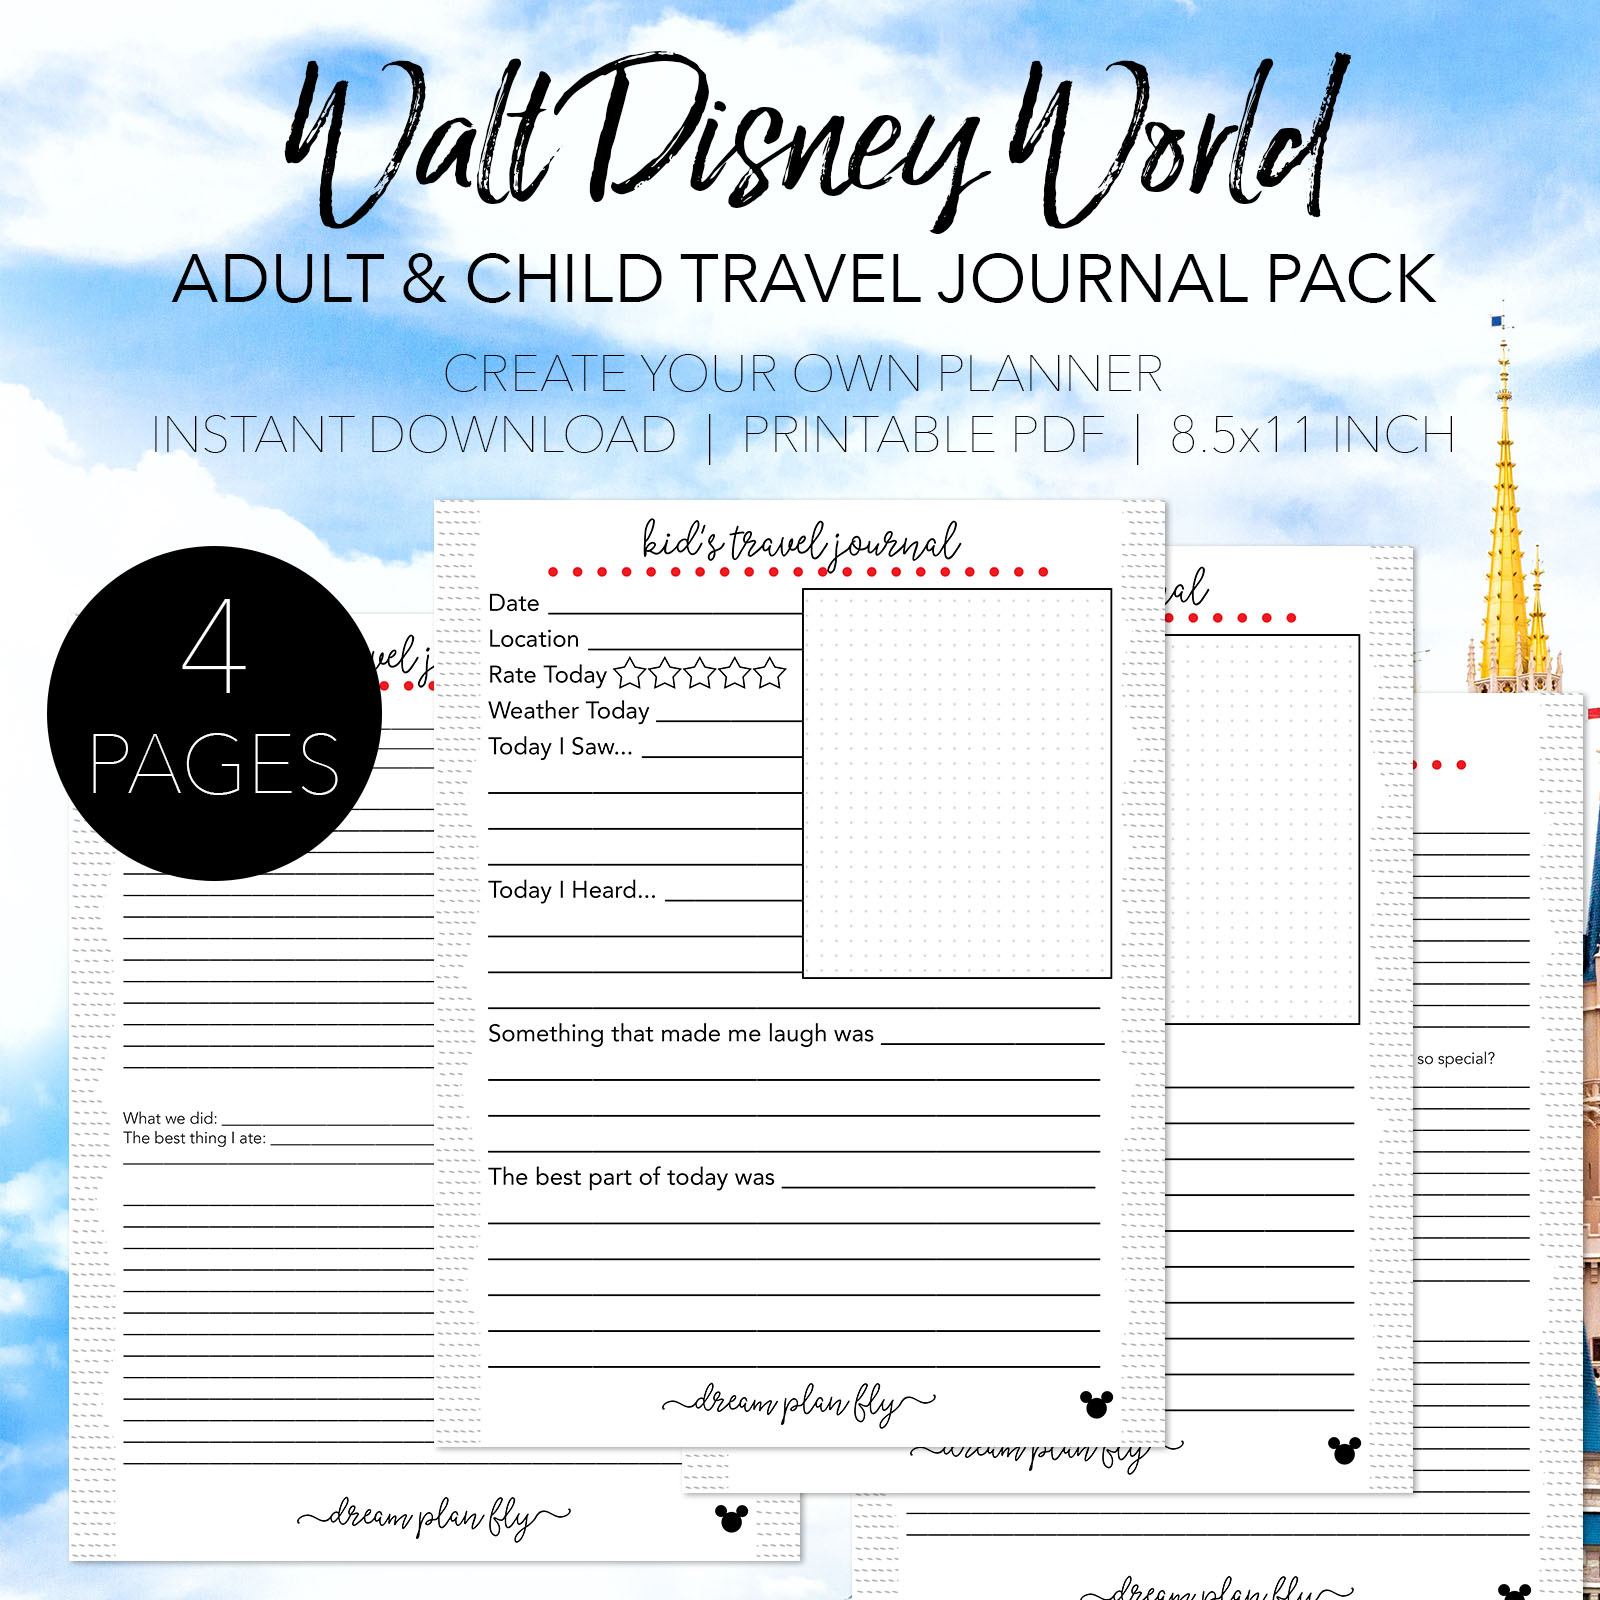 photograph relating to Travel Journal Printable named Walt Disney Globe Push Magazine Package deal